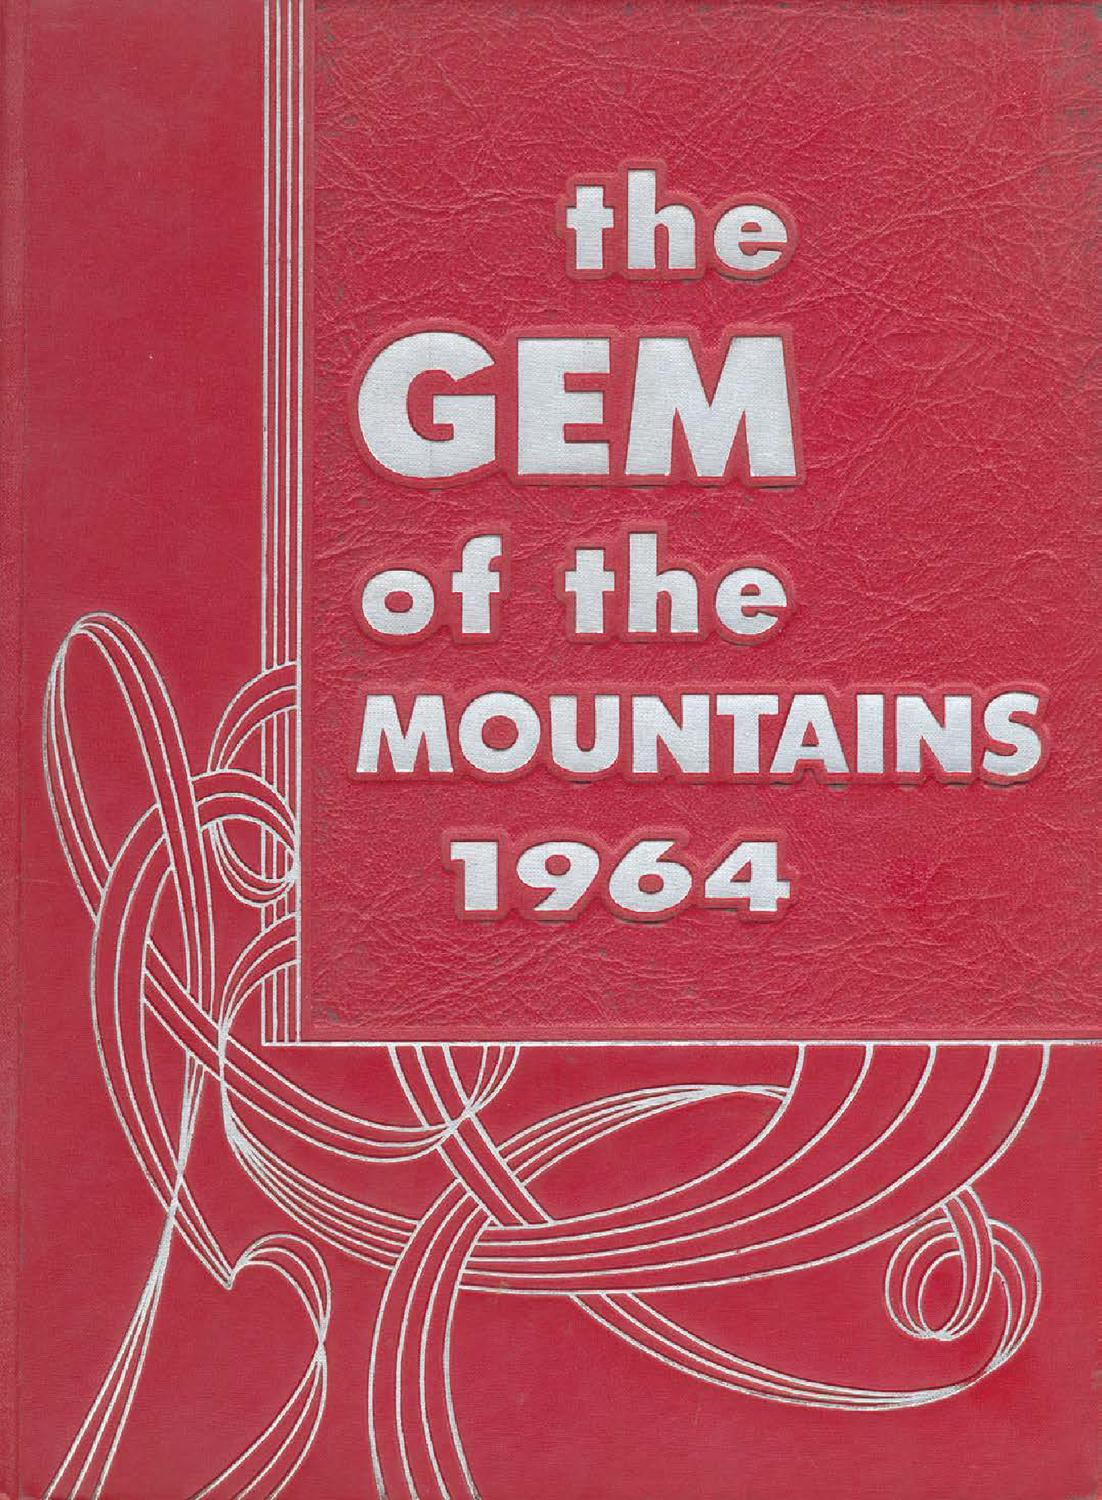 Beste 1964 Gem of the Mountains, Volume 62 - University of Idaho WN-13